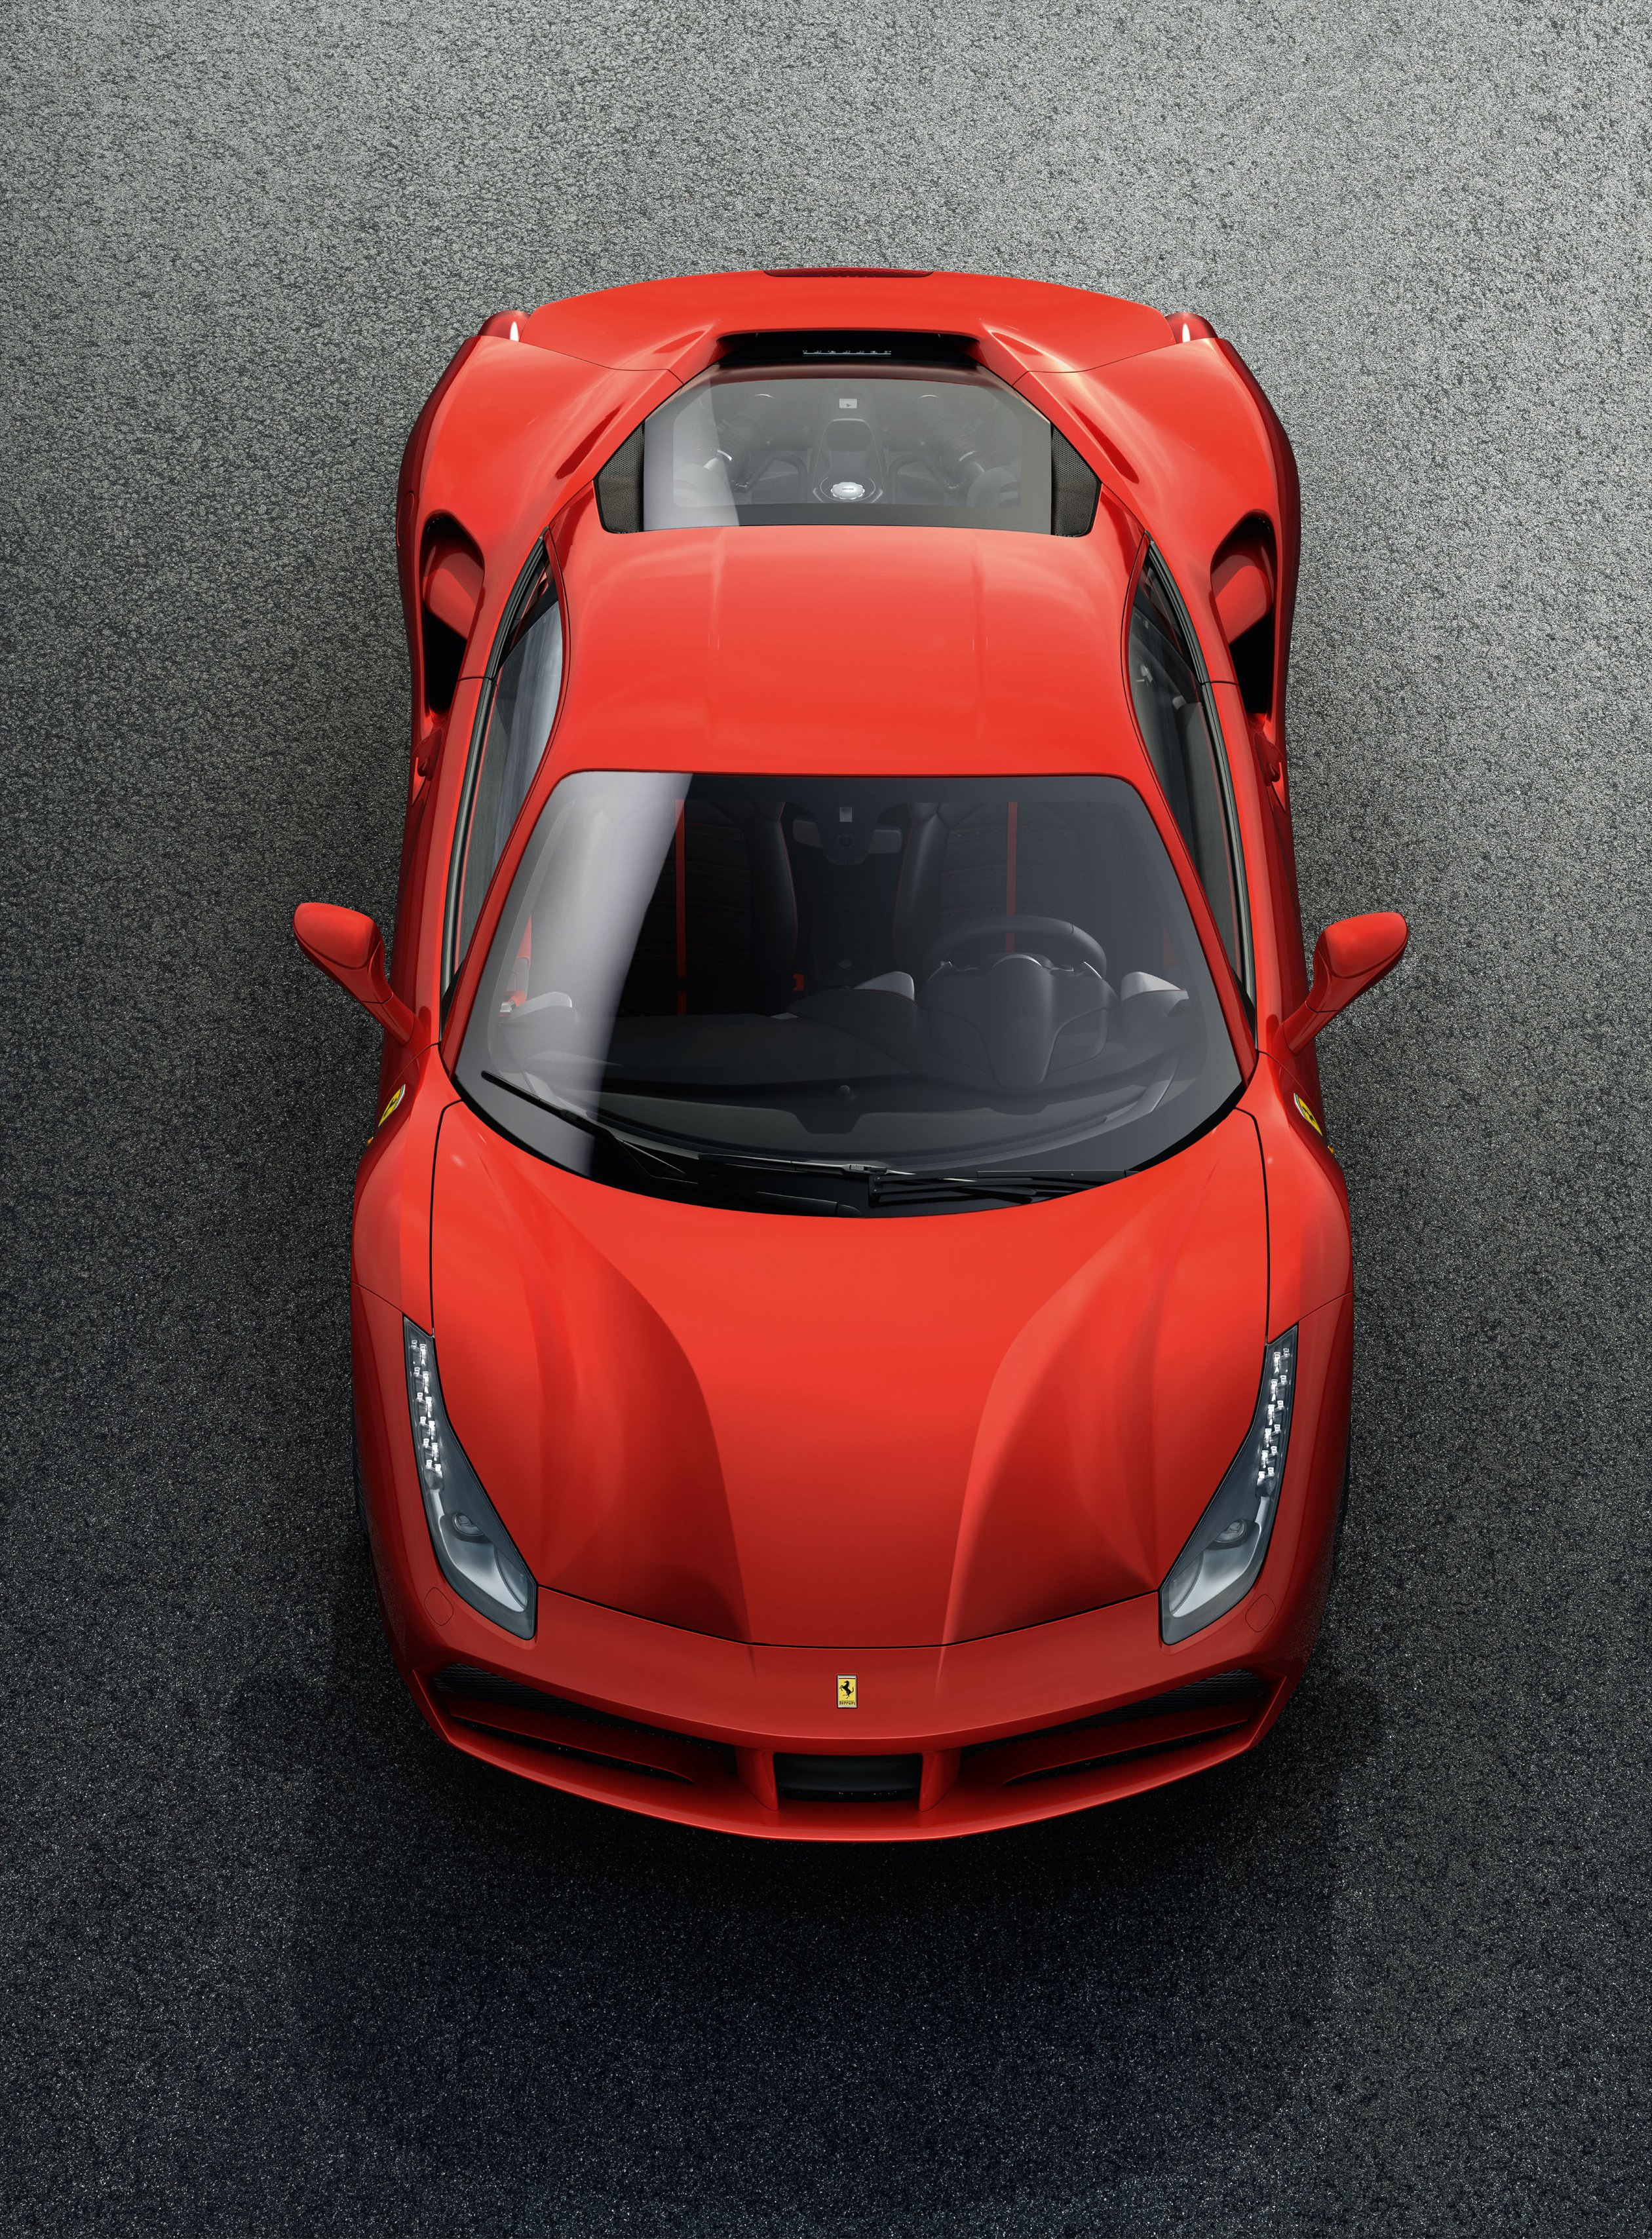 2015 ferrari 488 gtb supercar wallpaper 2521x3417 622449 wallpaperup - Ferrari 488 Iphone Wallpaper